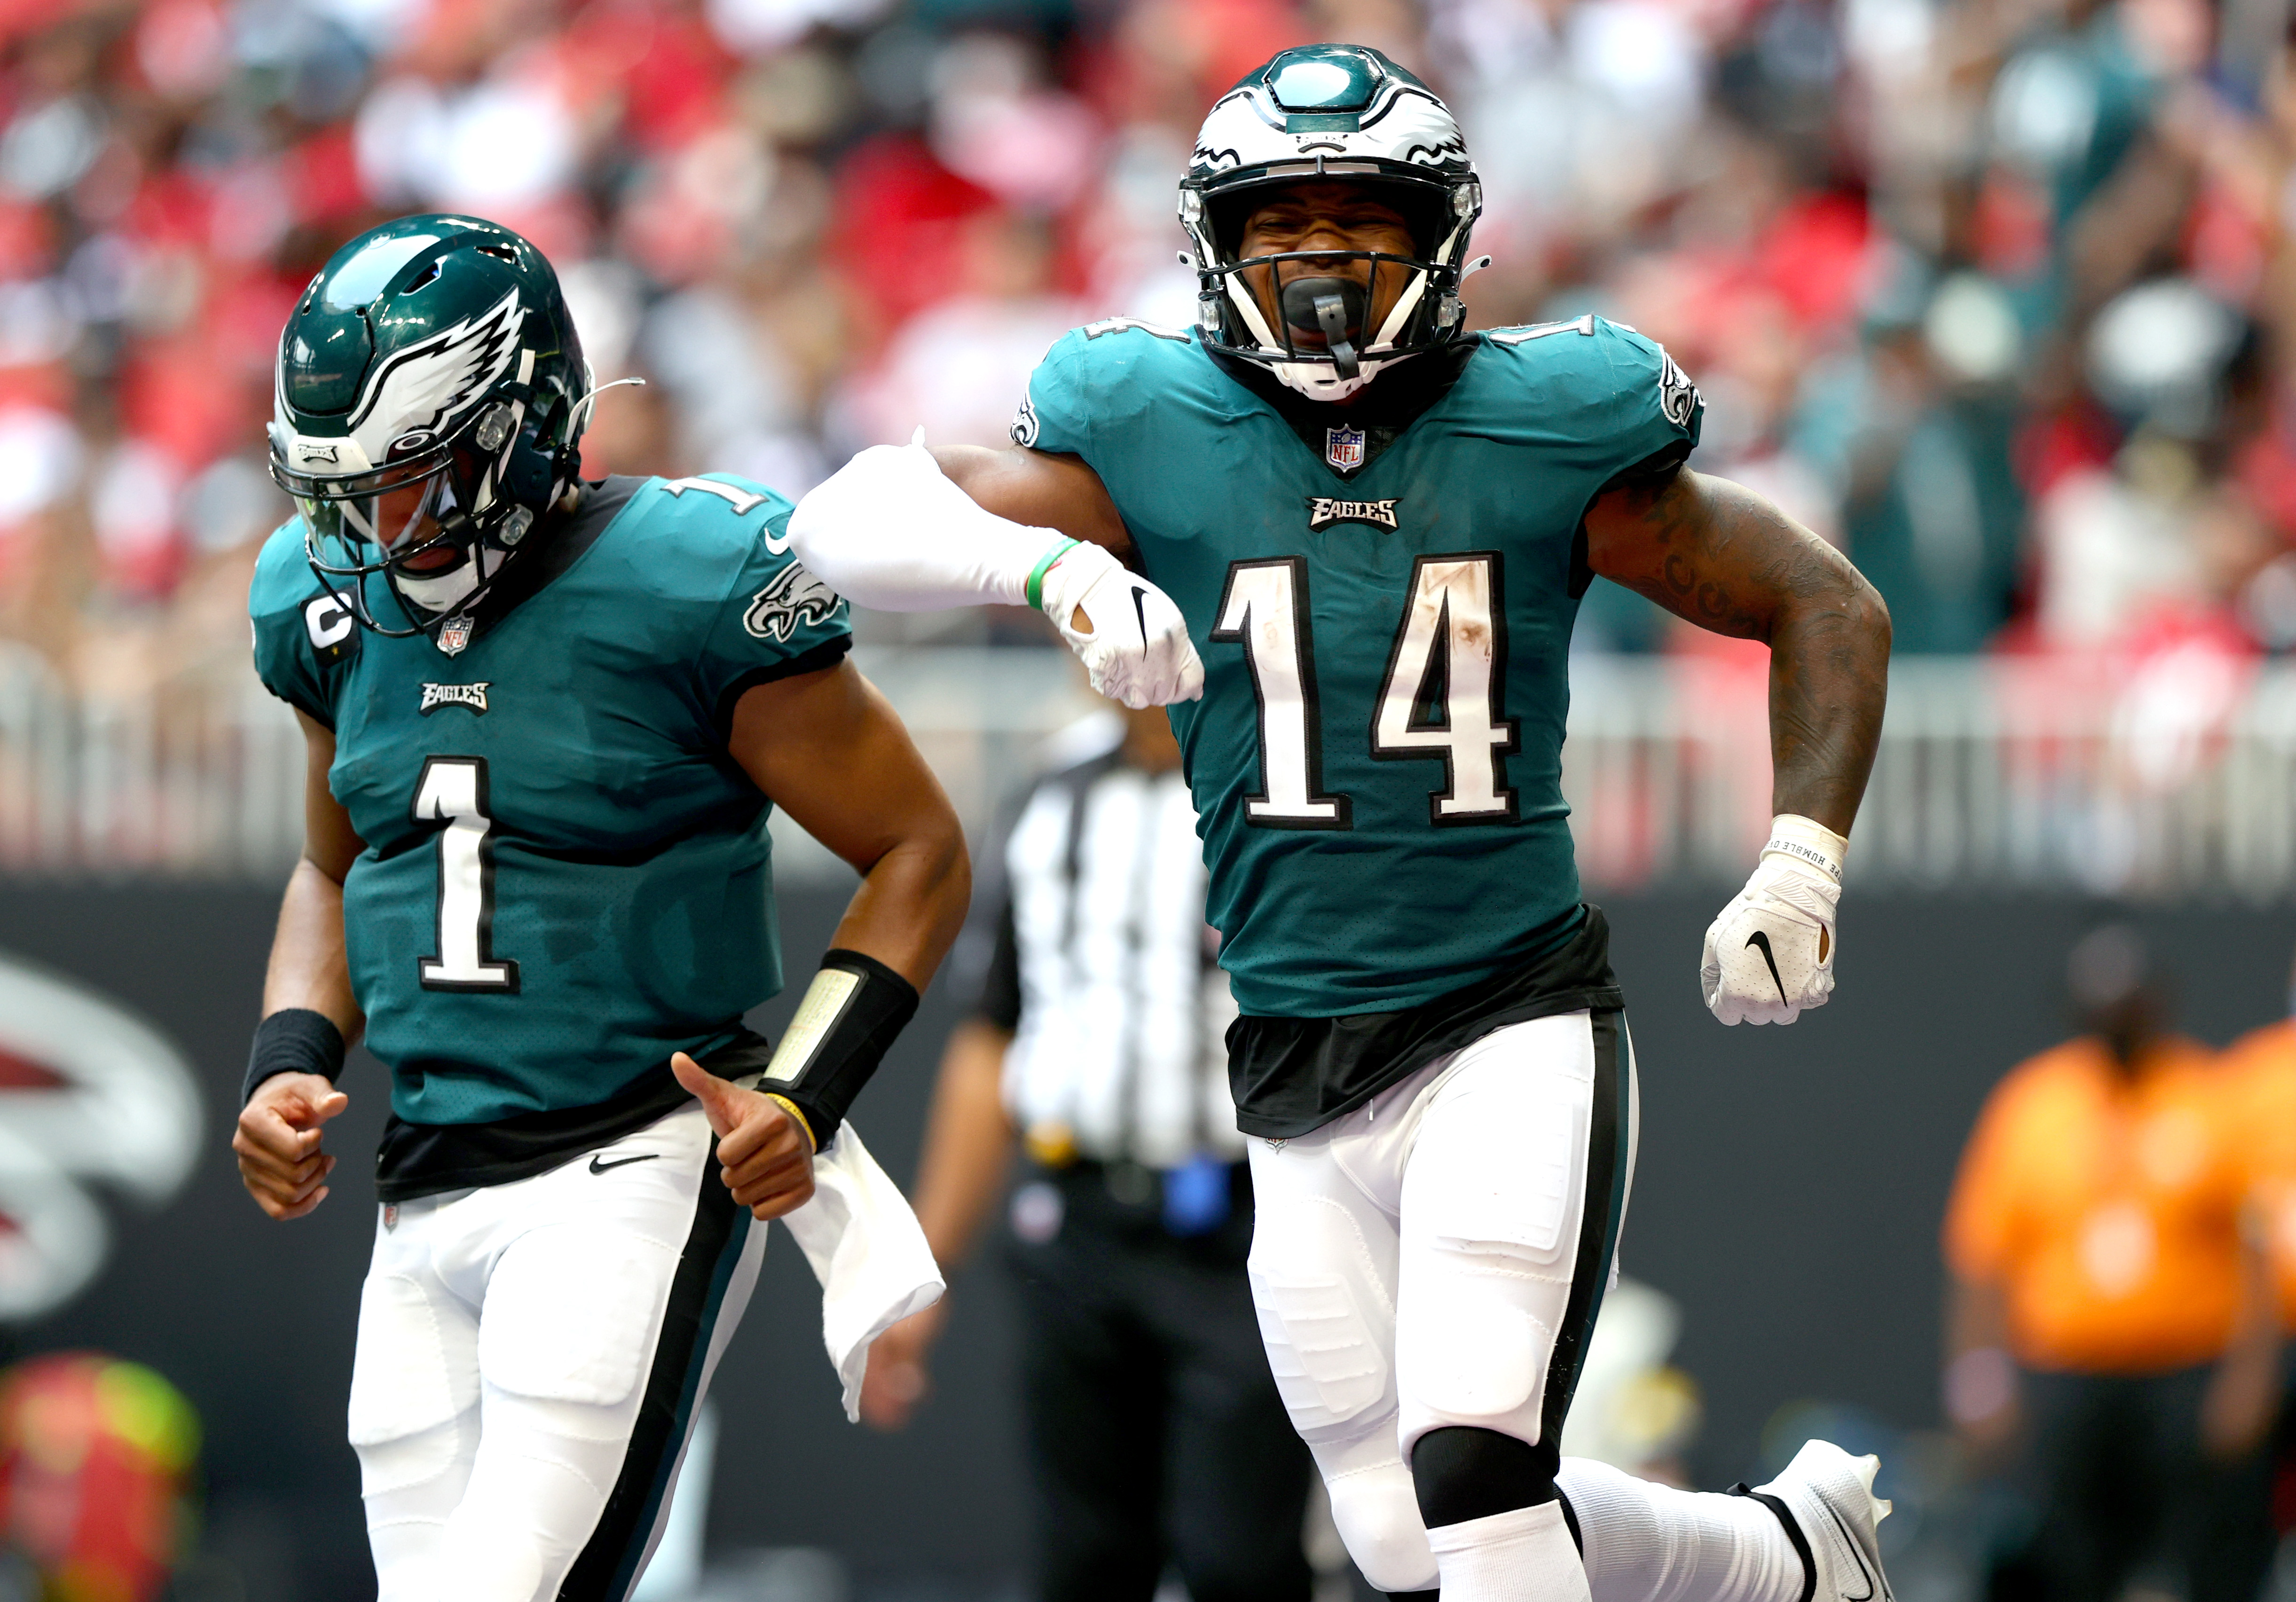 Kenneth Gainwell #14 and Jalen Hurts #1 of the Philadelphia Eagles celebrate after a touchdown during the fourth quarter at Mercedes-Benz Stadium on September 12, 2021 in Atlanta, Georgia.